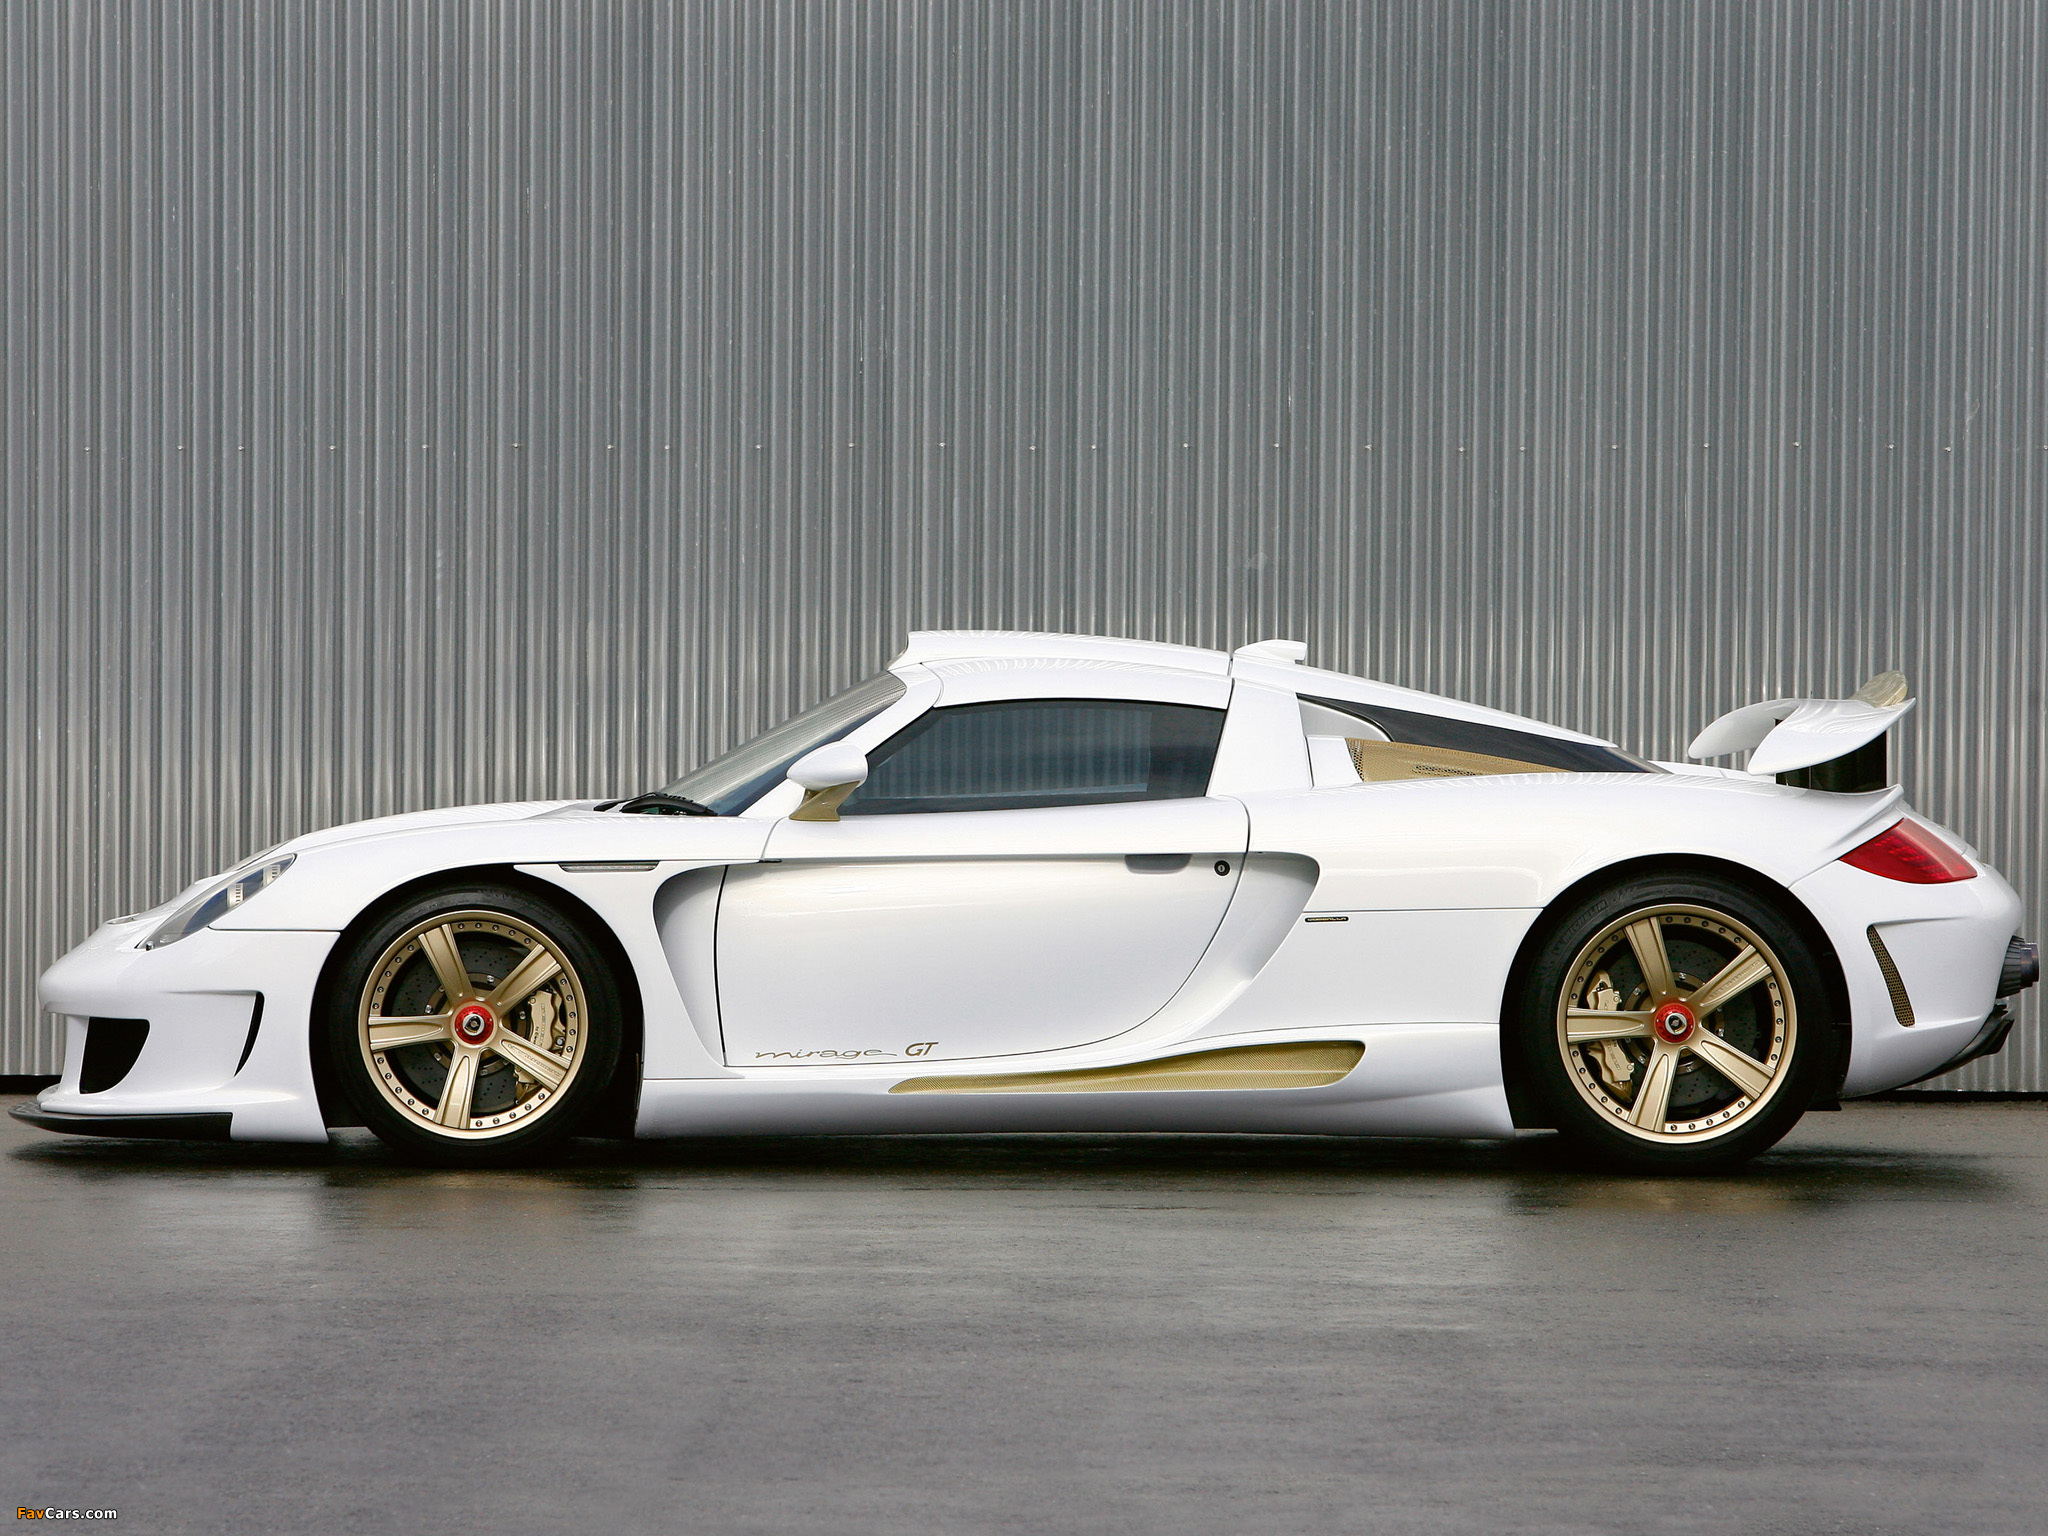 Gemballa Mirage Gt >> Gemballa Mirage Gt Gold Edition 2009 Wallpapers 2048x1536